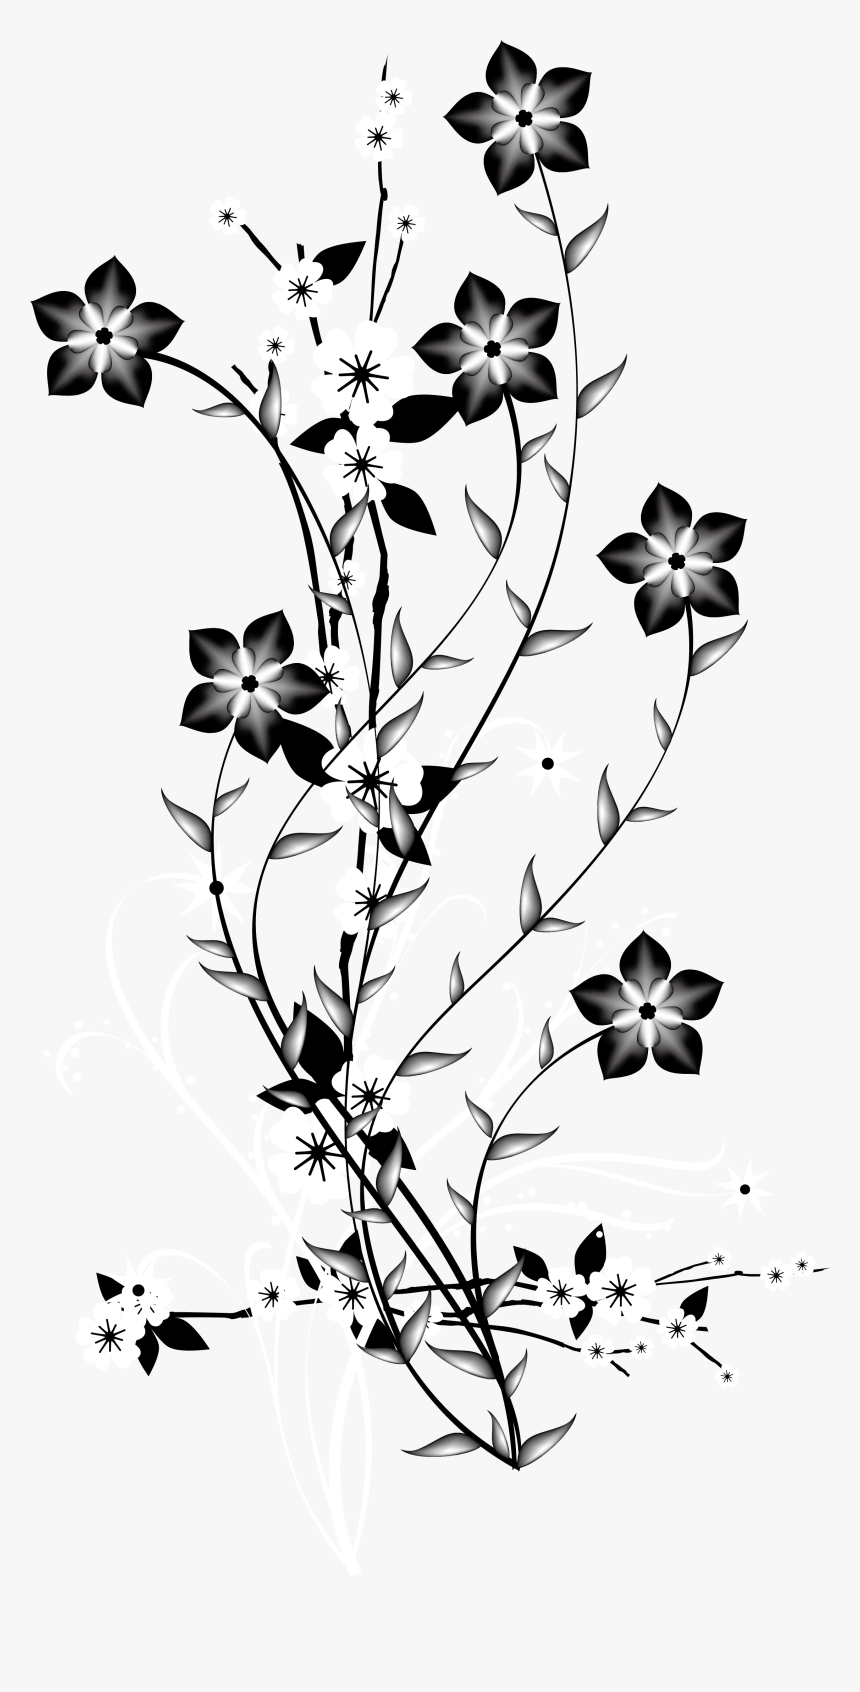 Flower Png Black And White, Transparent Png, Free Download